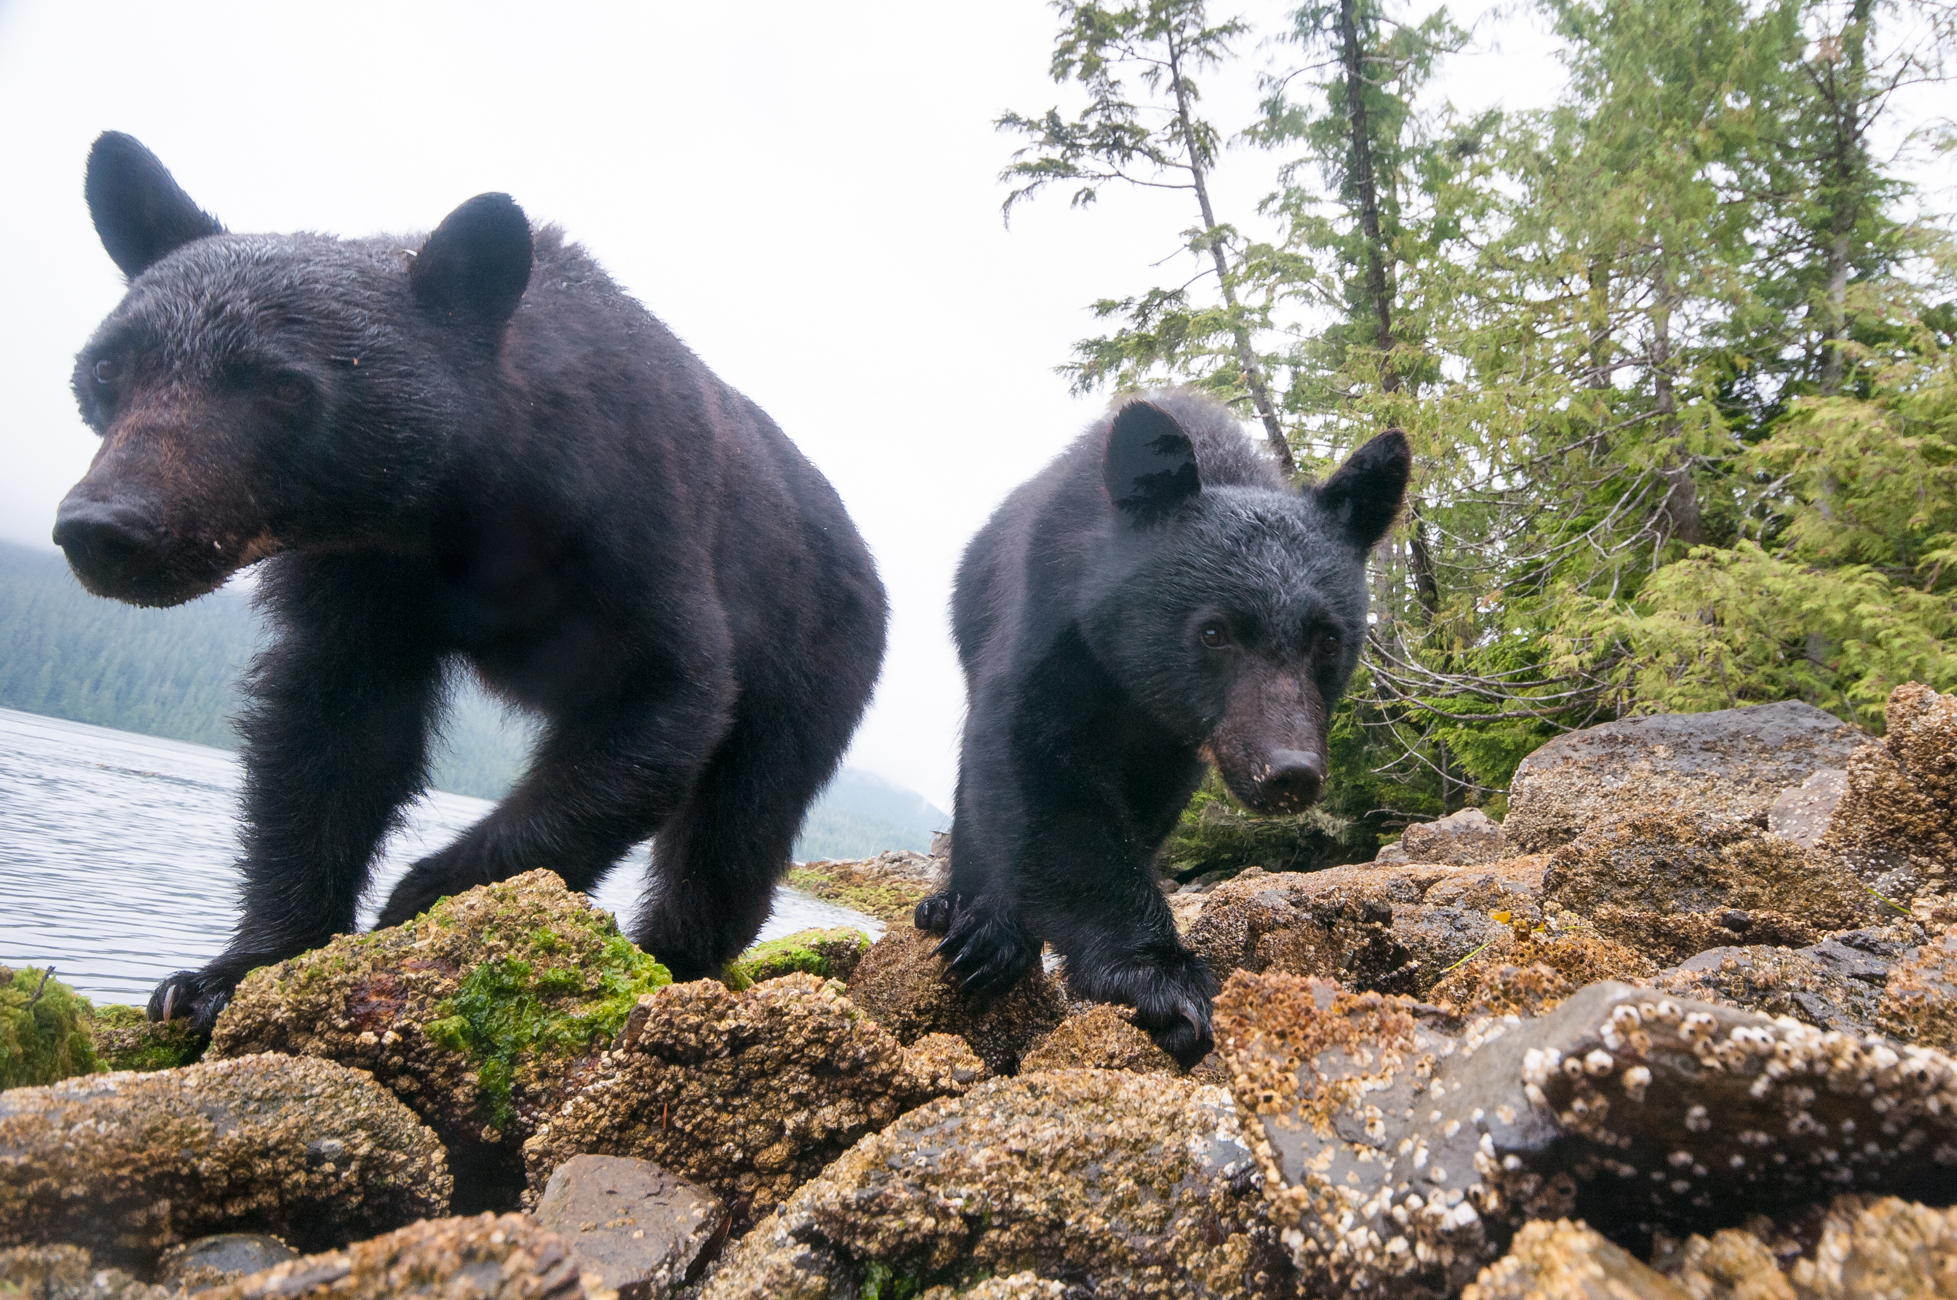 A female black bear and her 18-month-old cub investigate a remote controlled camera on the rocky shoreline.